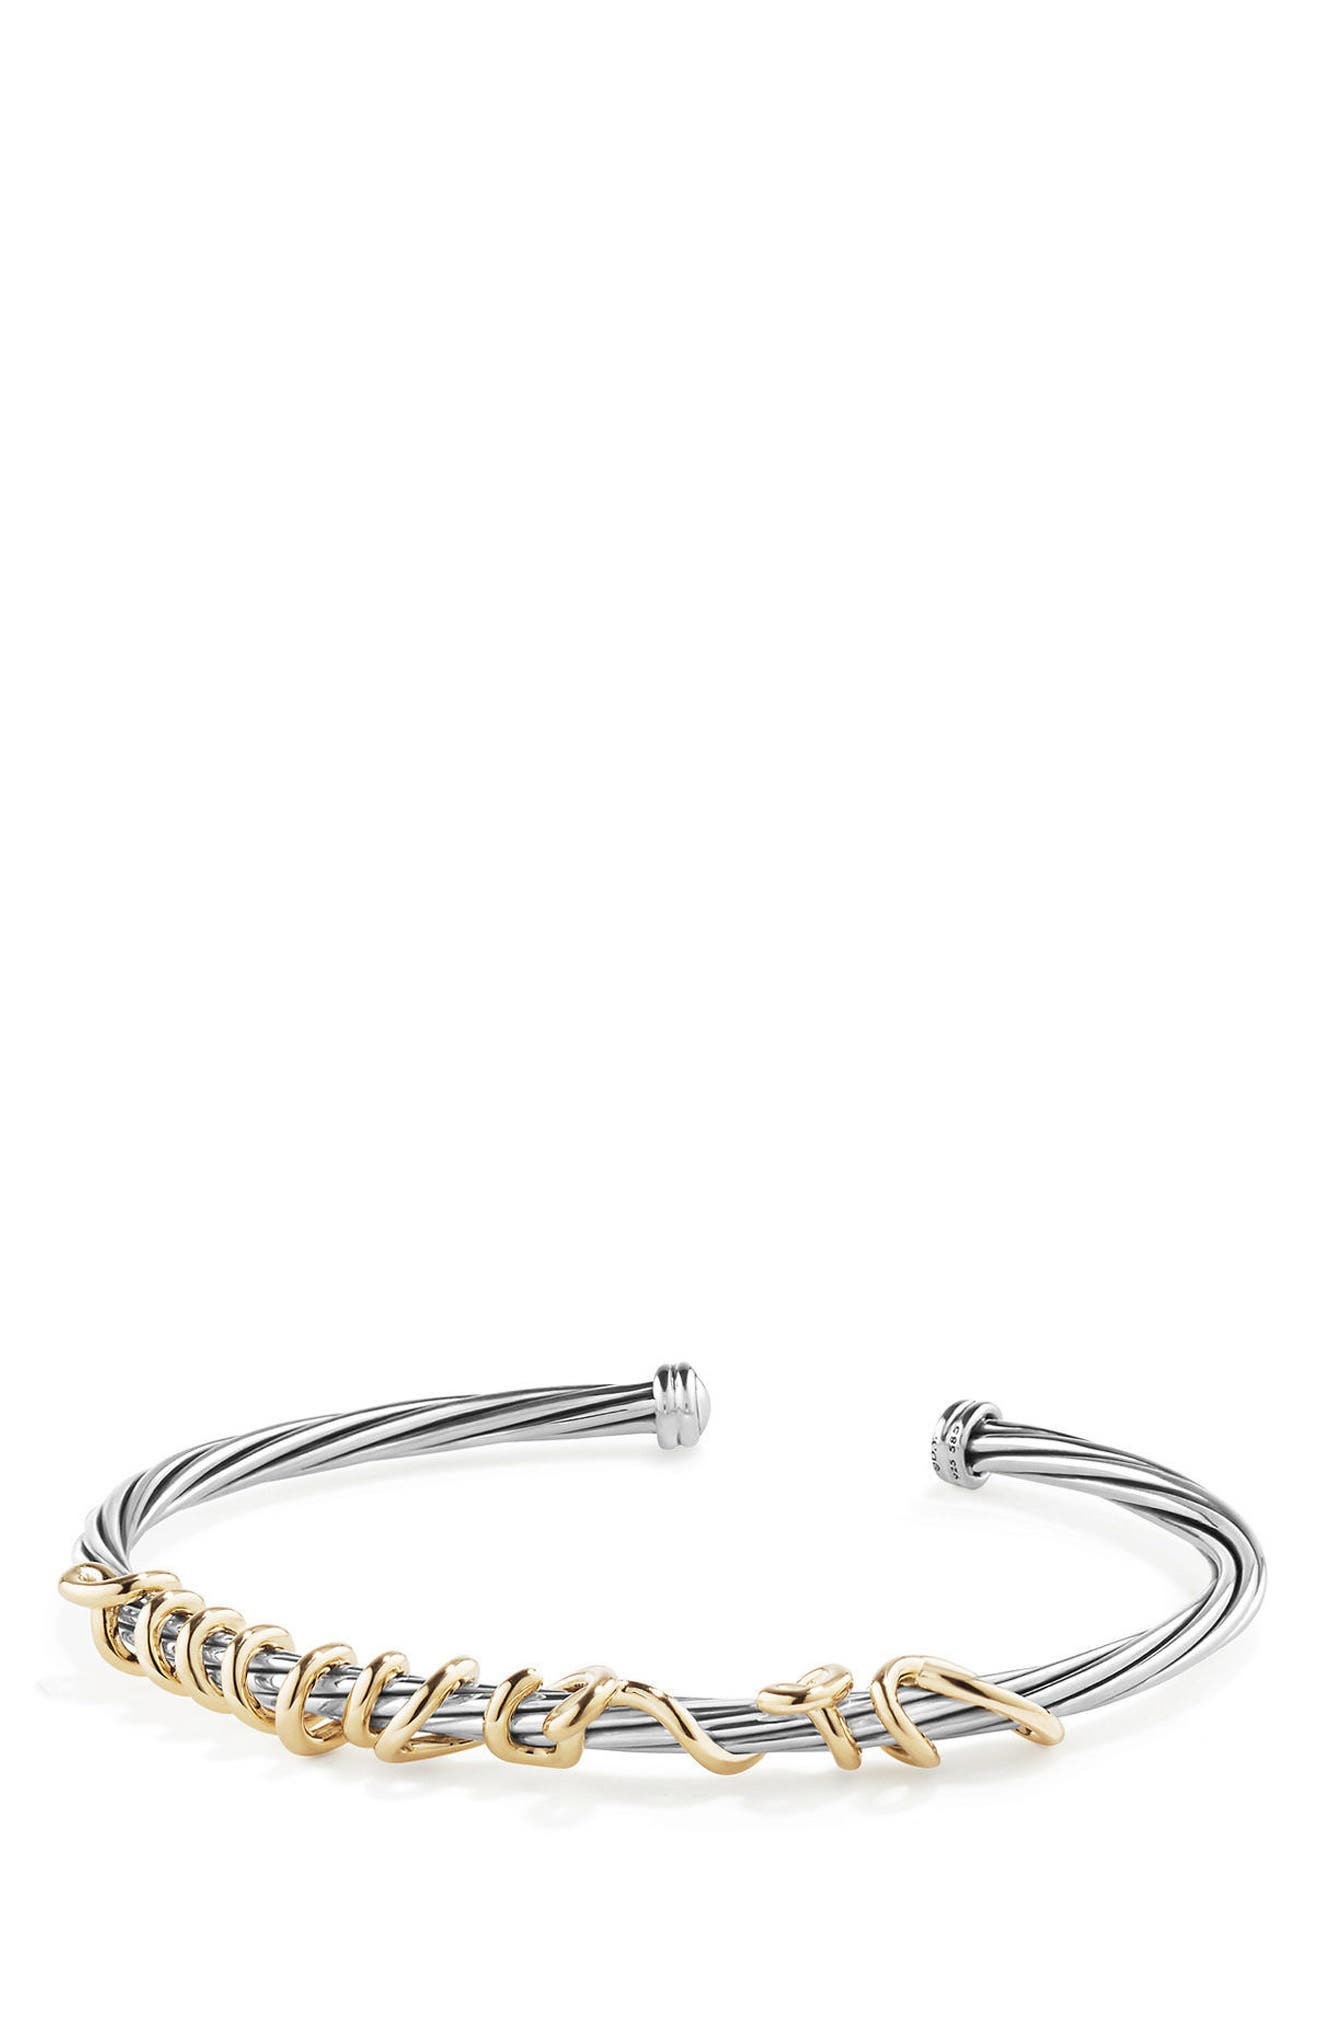 DY Whispers Je T'aime Bracelet with 14k Gold,                         Main,                         color, Silver/ Gold